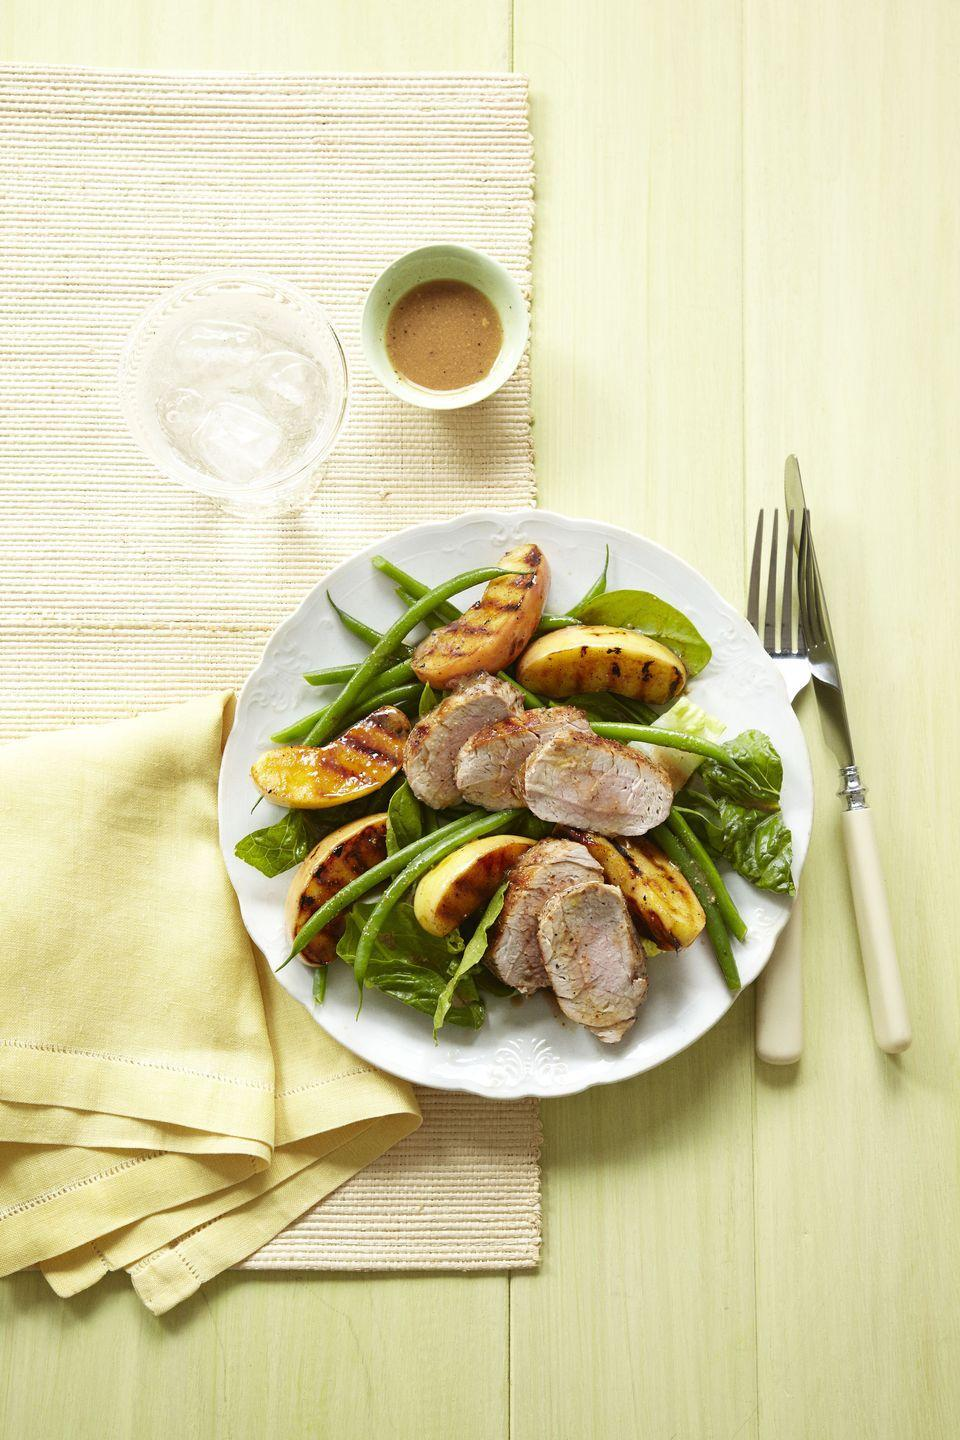 "<p>Give the classic combo a smoky, gourmet update by grilling the apples instead of turning 'em into sauce.</p><p><a href=""https://www.goodhousekeeping.com/food-recipes/a13772/grilled-pork-apple-salad-recipe-ghk0912/"" rel=""nofollow noopener"" target=""_blank"" data-ylk=""slk:Get the recipe for Grilled Pork and Apple Salad »"" class=""link rapid-noclick-resp""><em>Get the recipe for Grilled Pork and Apple Salad »</em></a></p>"